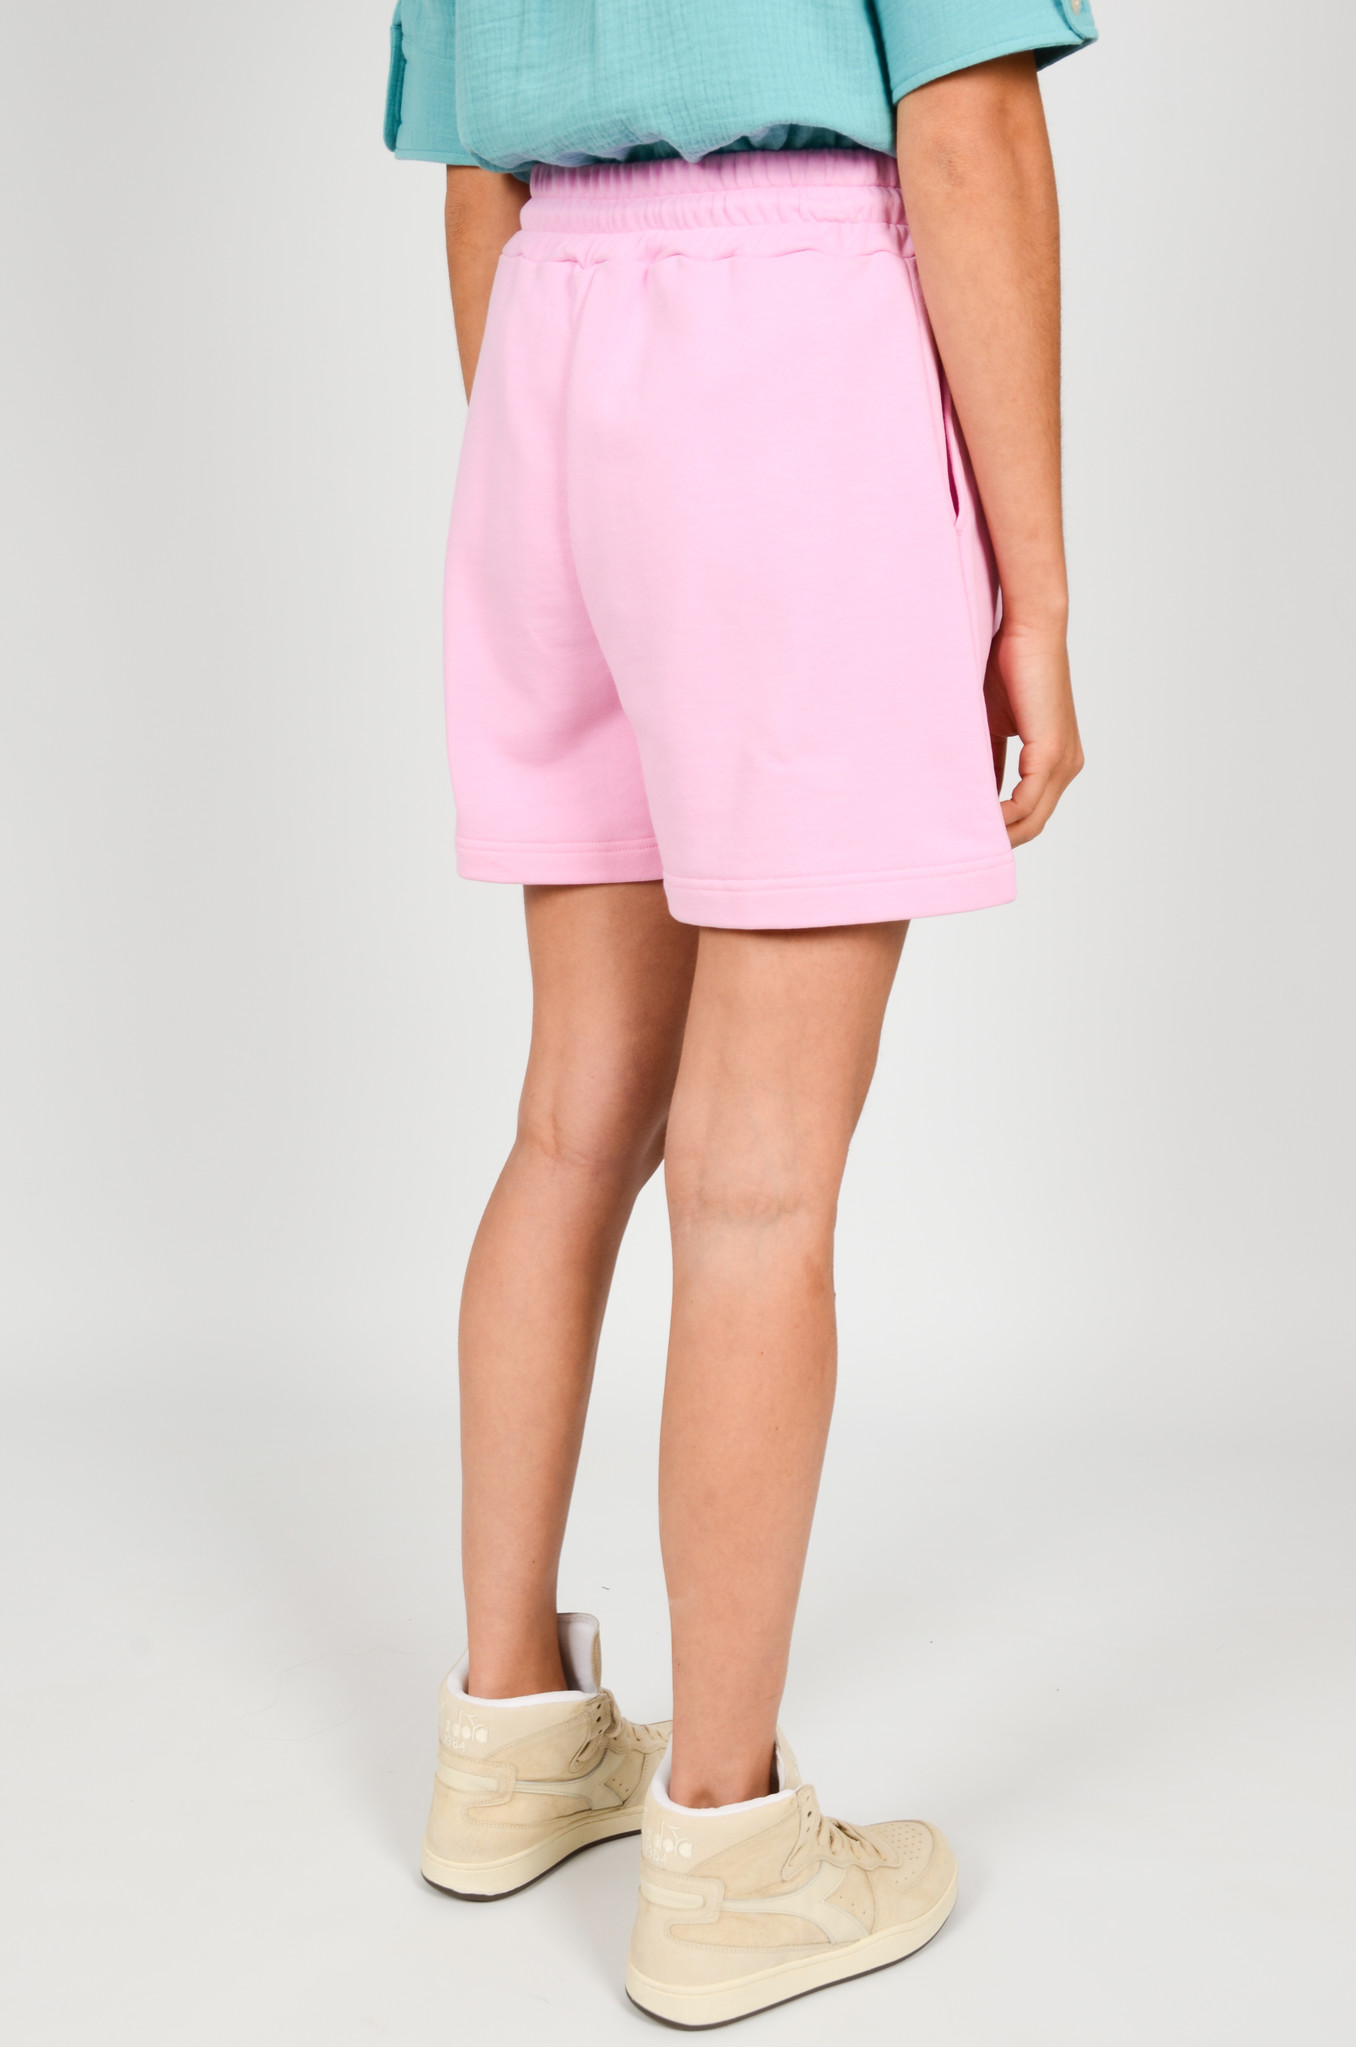 SWEAT SHORTS IN PINK-3